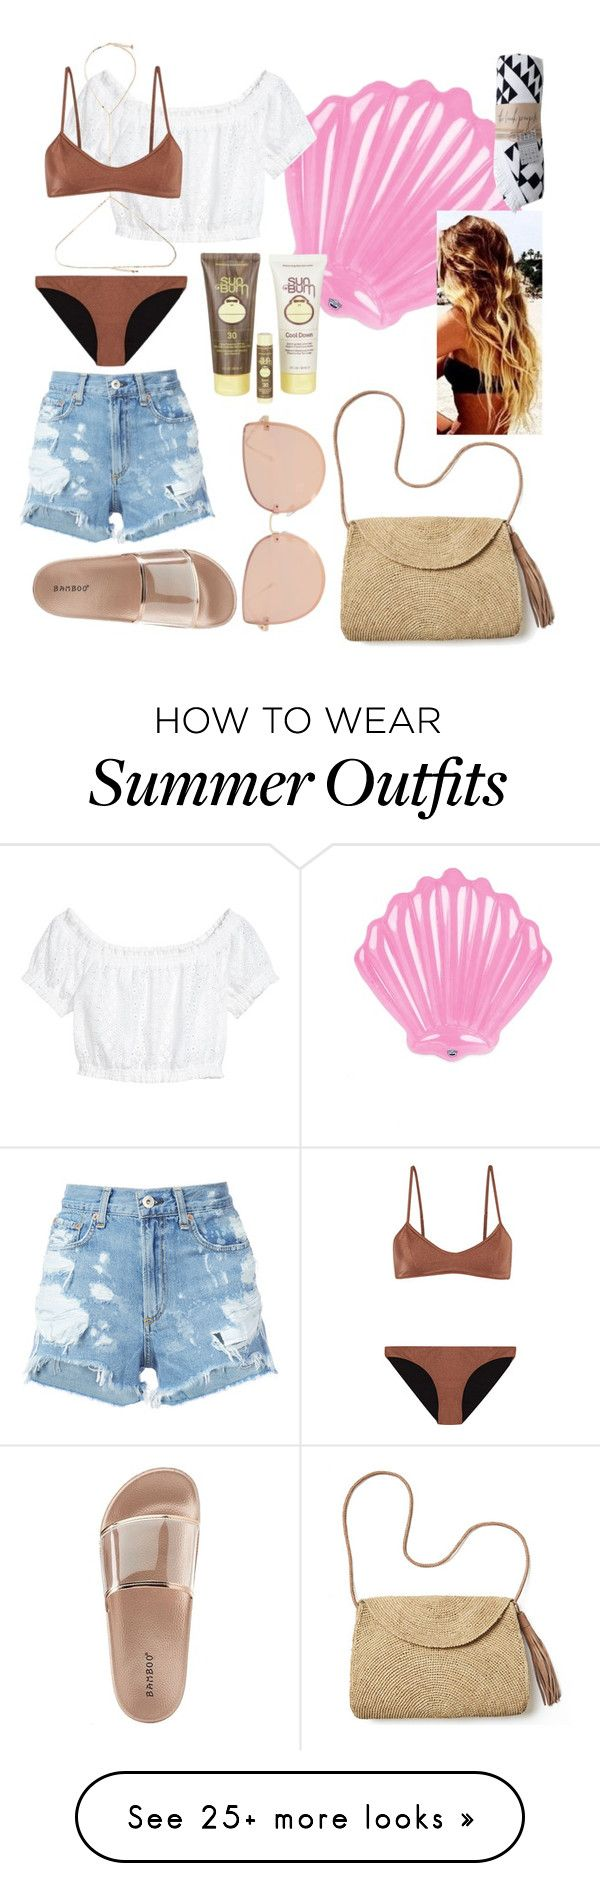 """Beach or Pool day outfit"" by dulcefashion on Polyvore featuring Big Mouth, Rosantica, Melissa Odabash, rag & bone/JEAN, Bamboo, Mar y Sol, Topshop and Sun Bum"